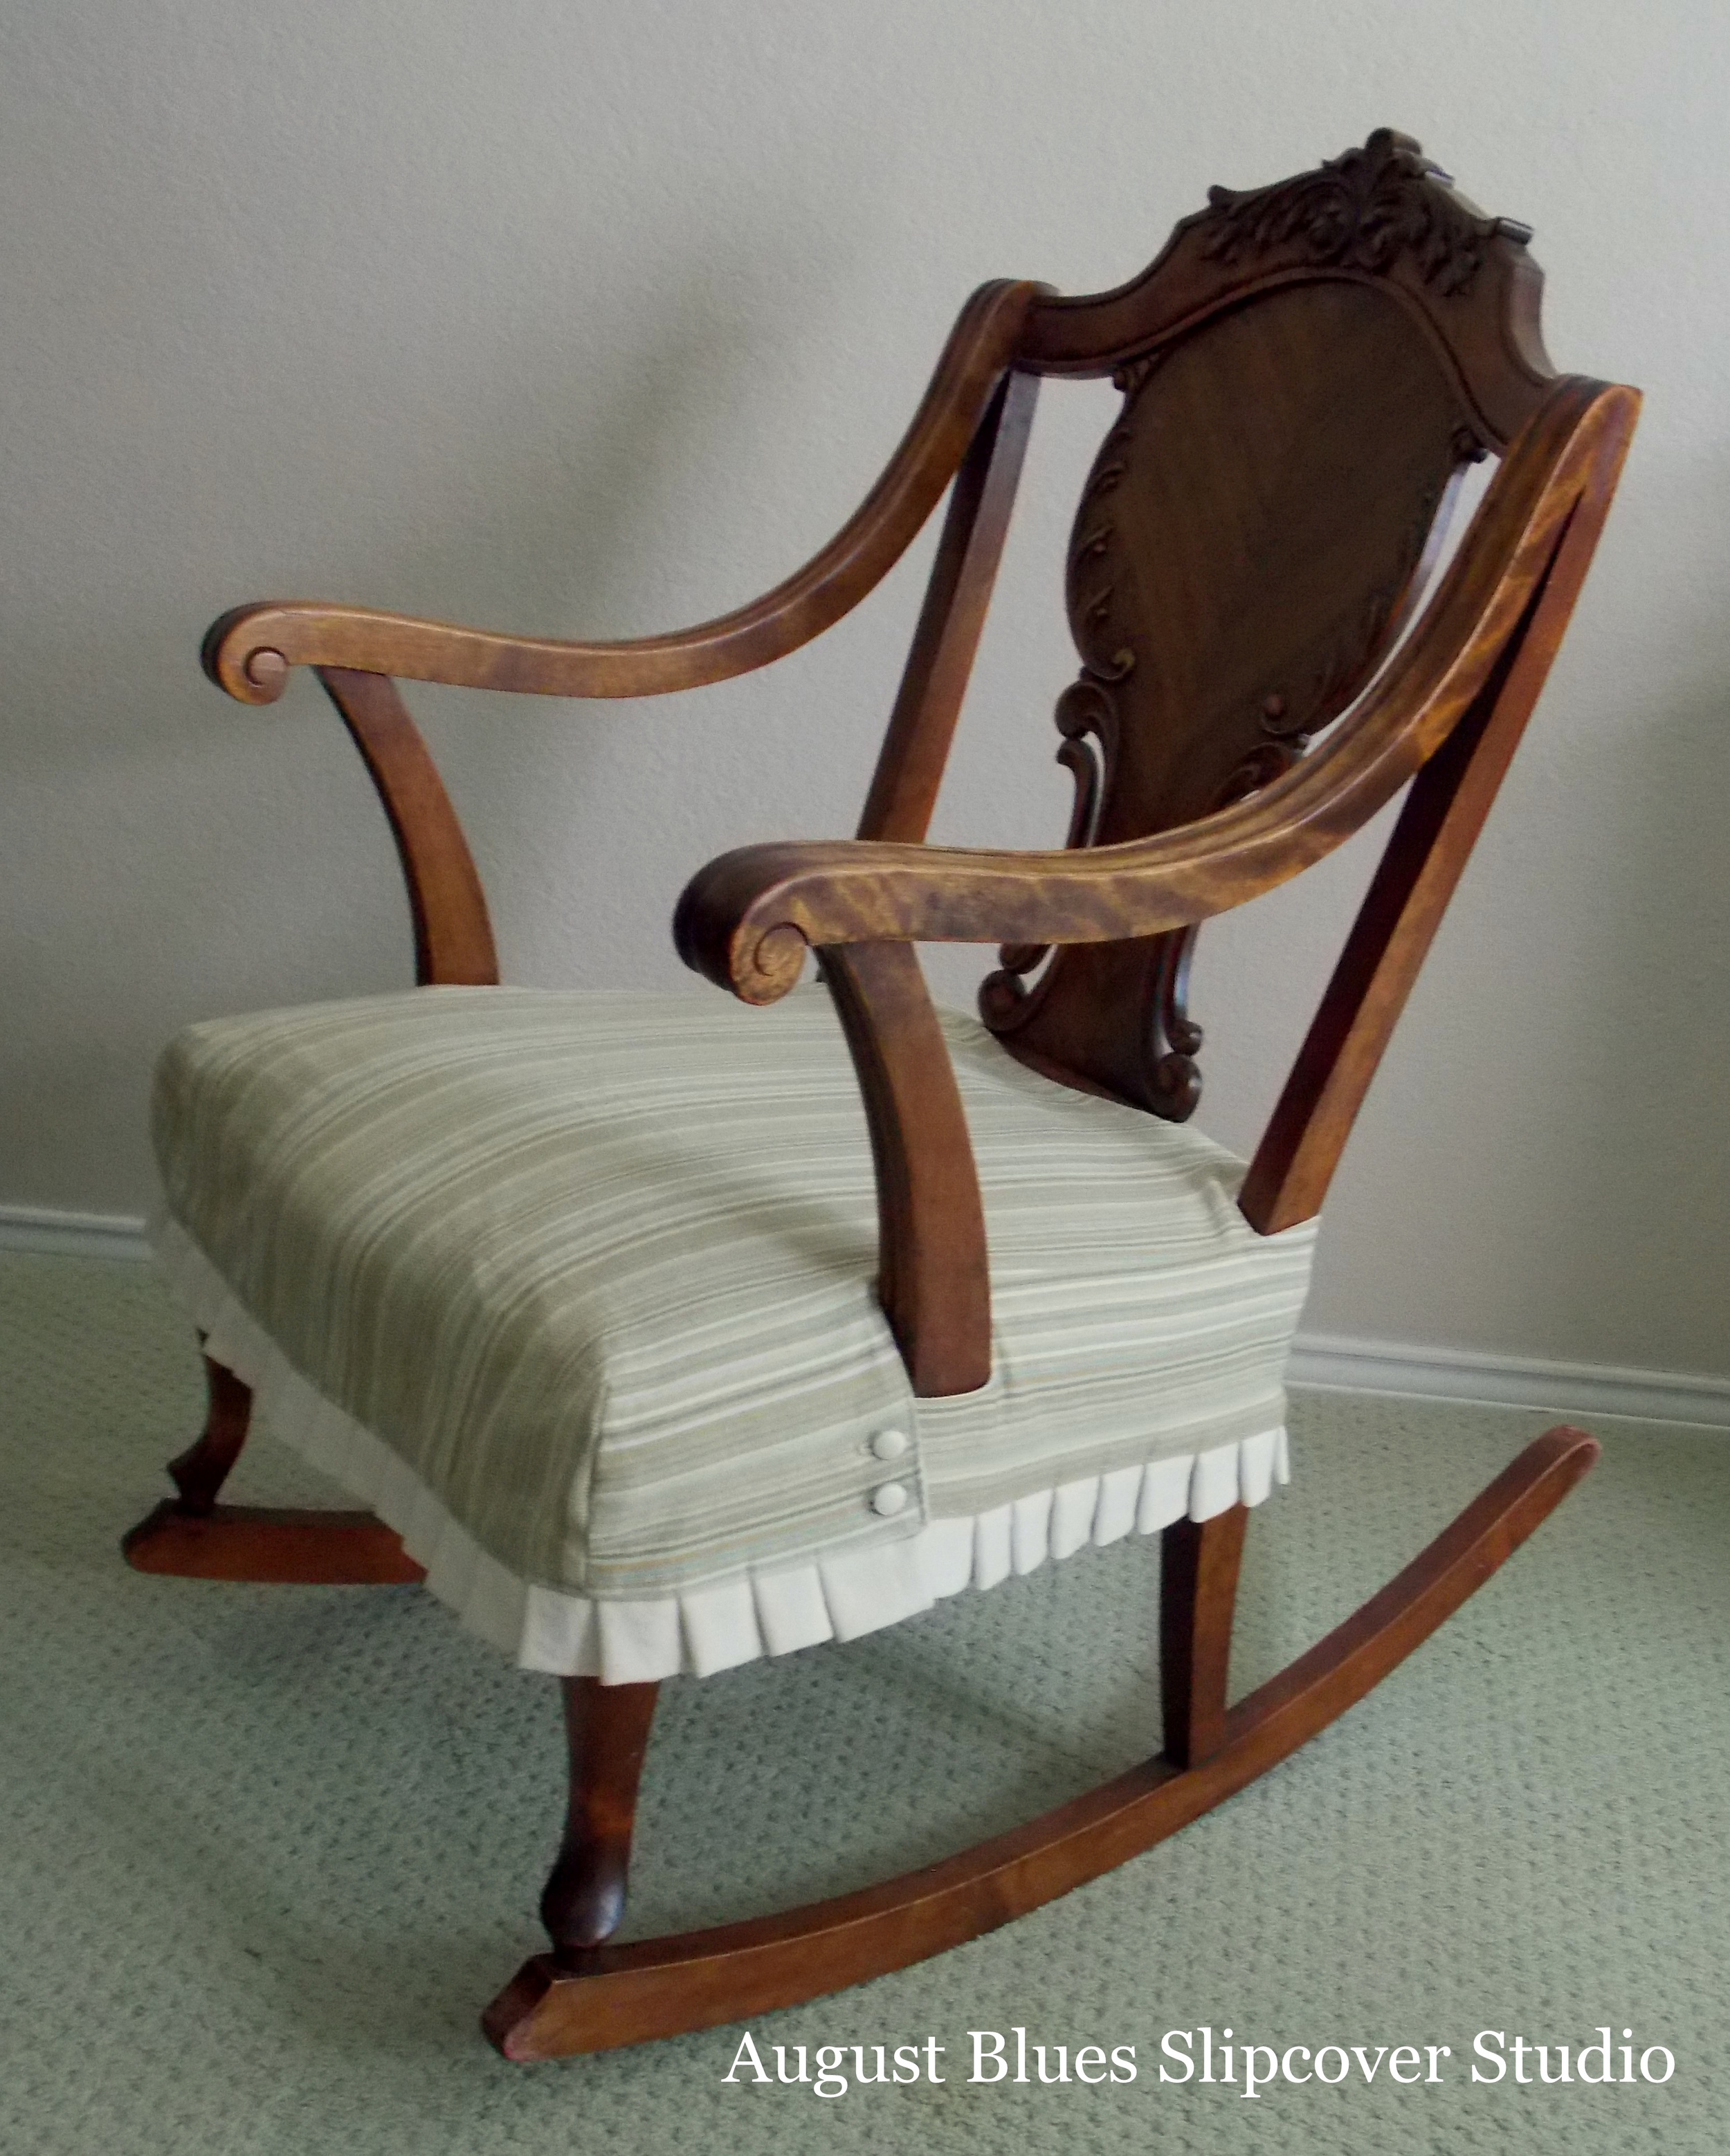 August Blues - Rocking Chair After